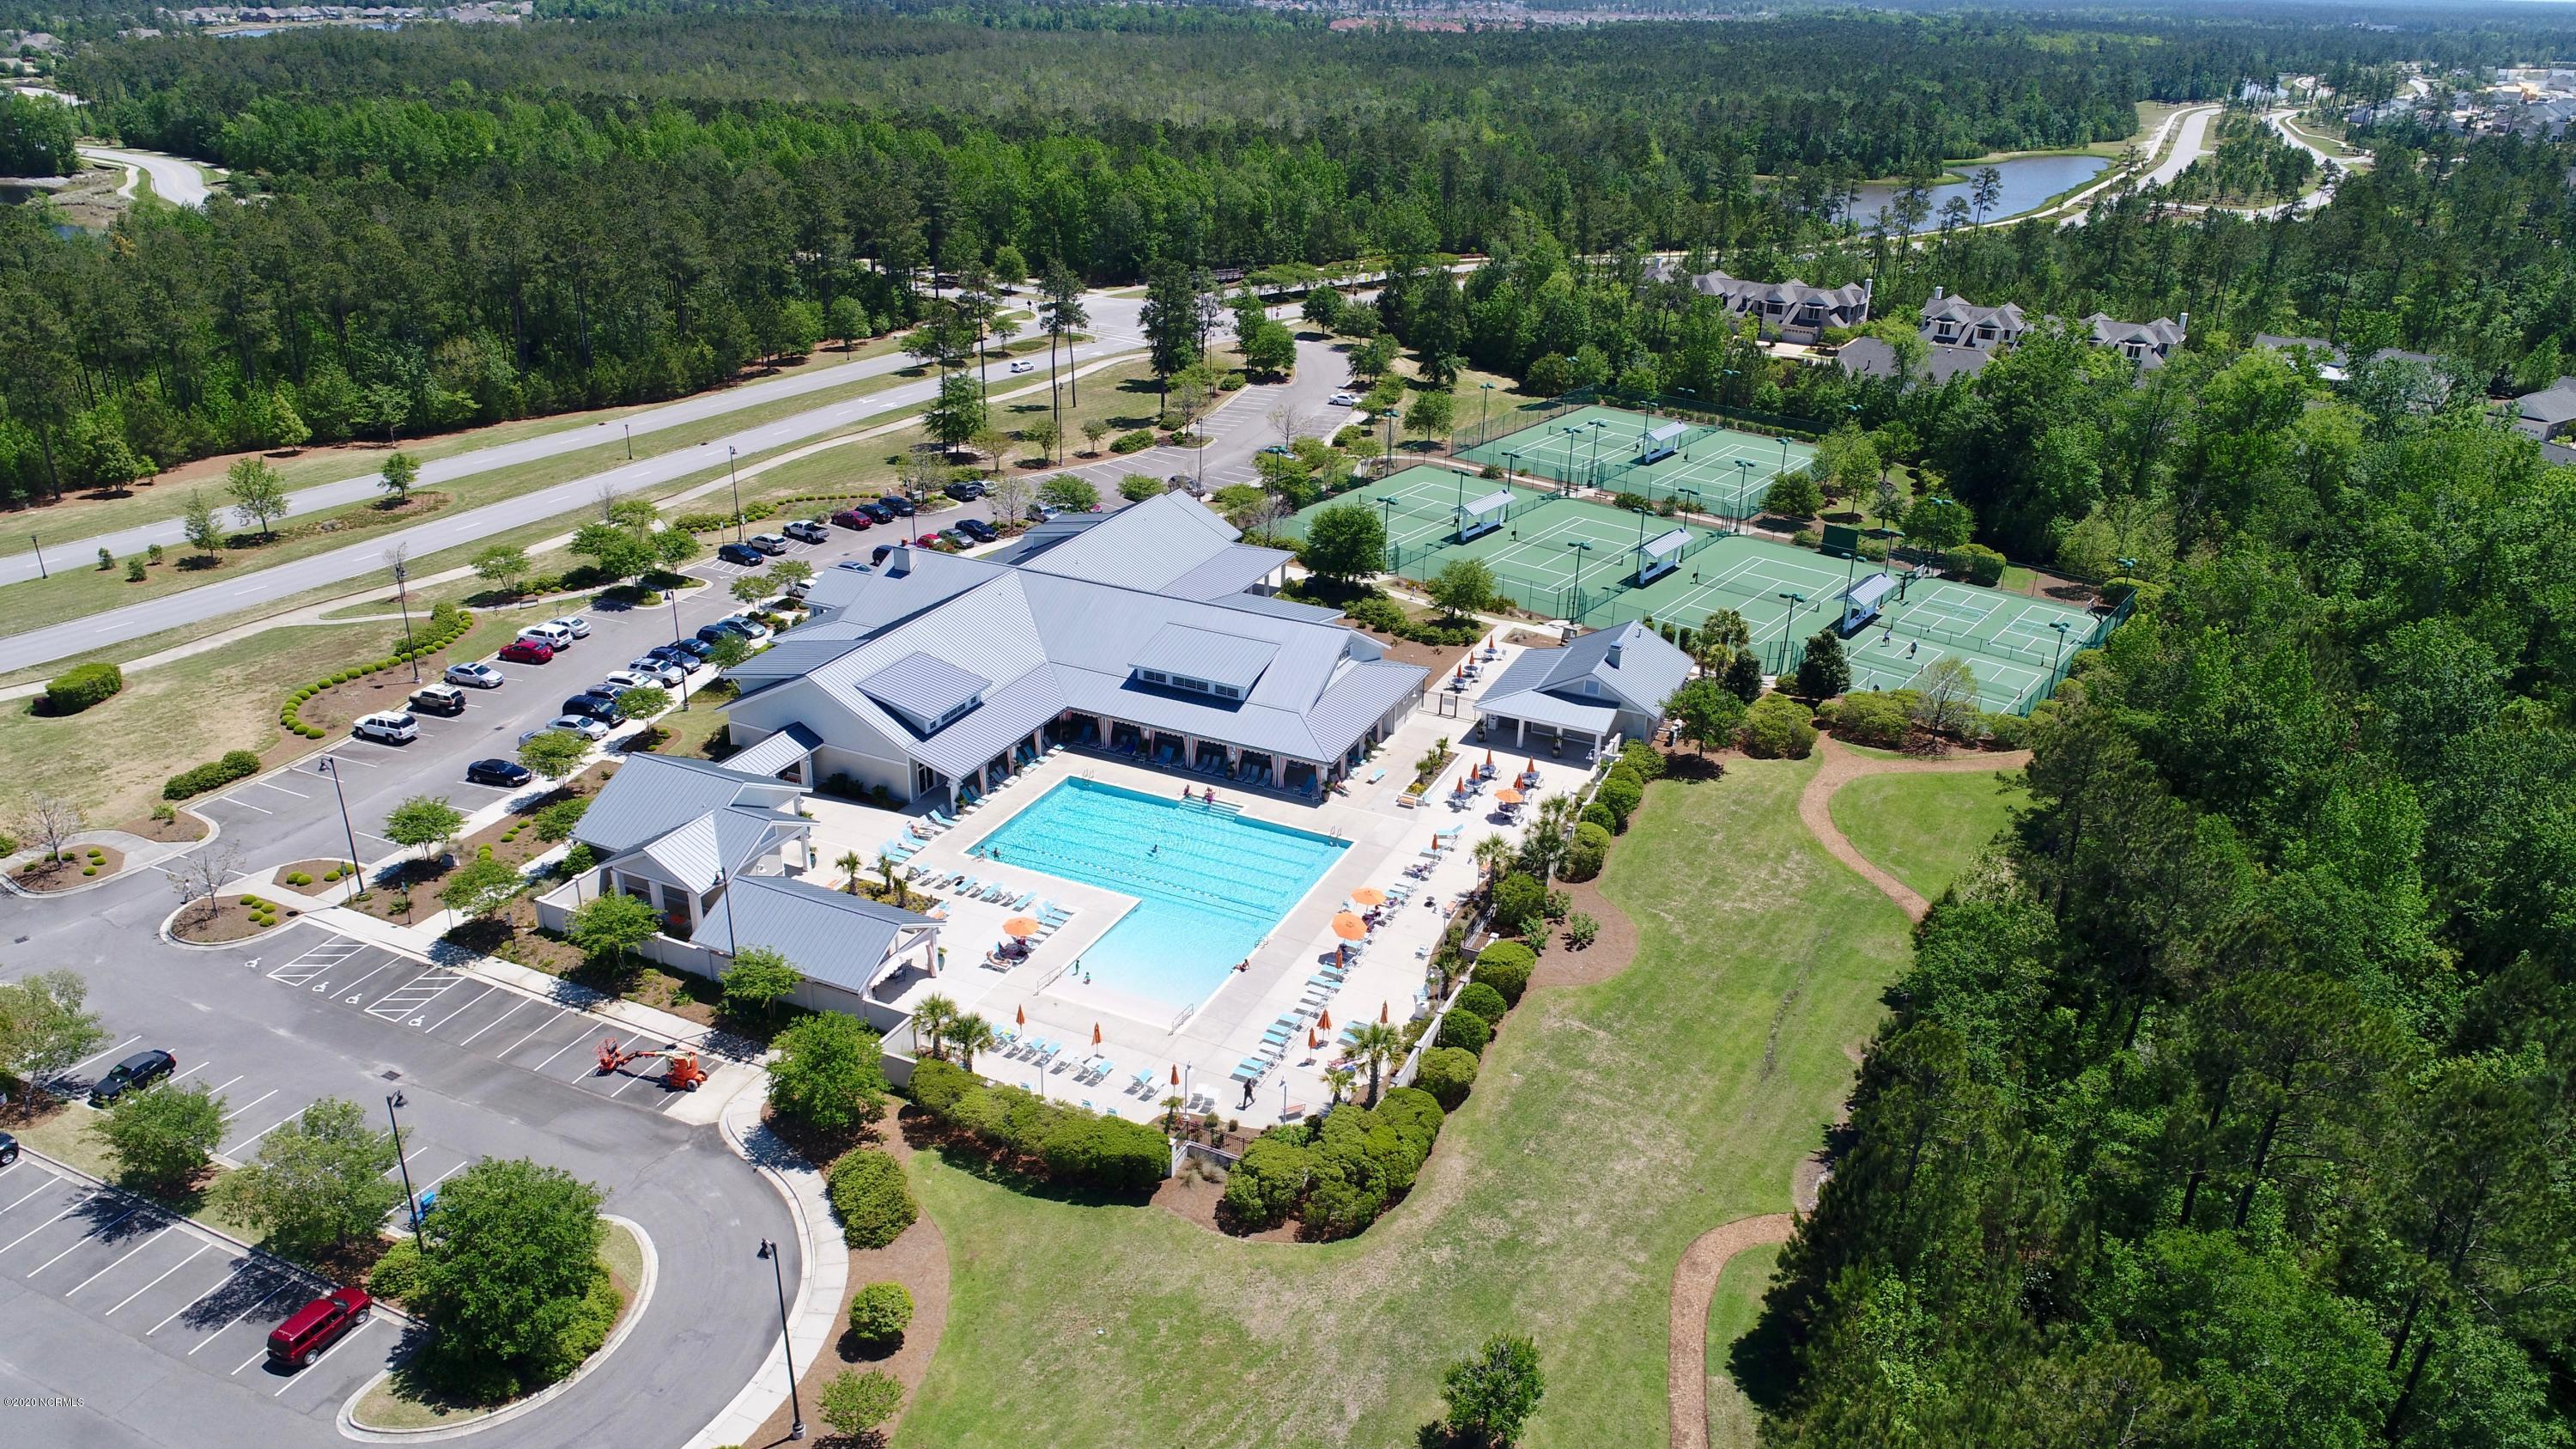 5033 Creswell Drive, Leland, North Carolina 28451, 4 Bedrooms Bedrooms, 9 Rooms Rooms,3 BathroomsBathrooms,Single family residence,For sale,Creswell,100227566